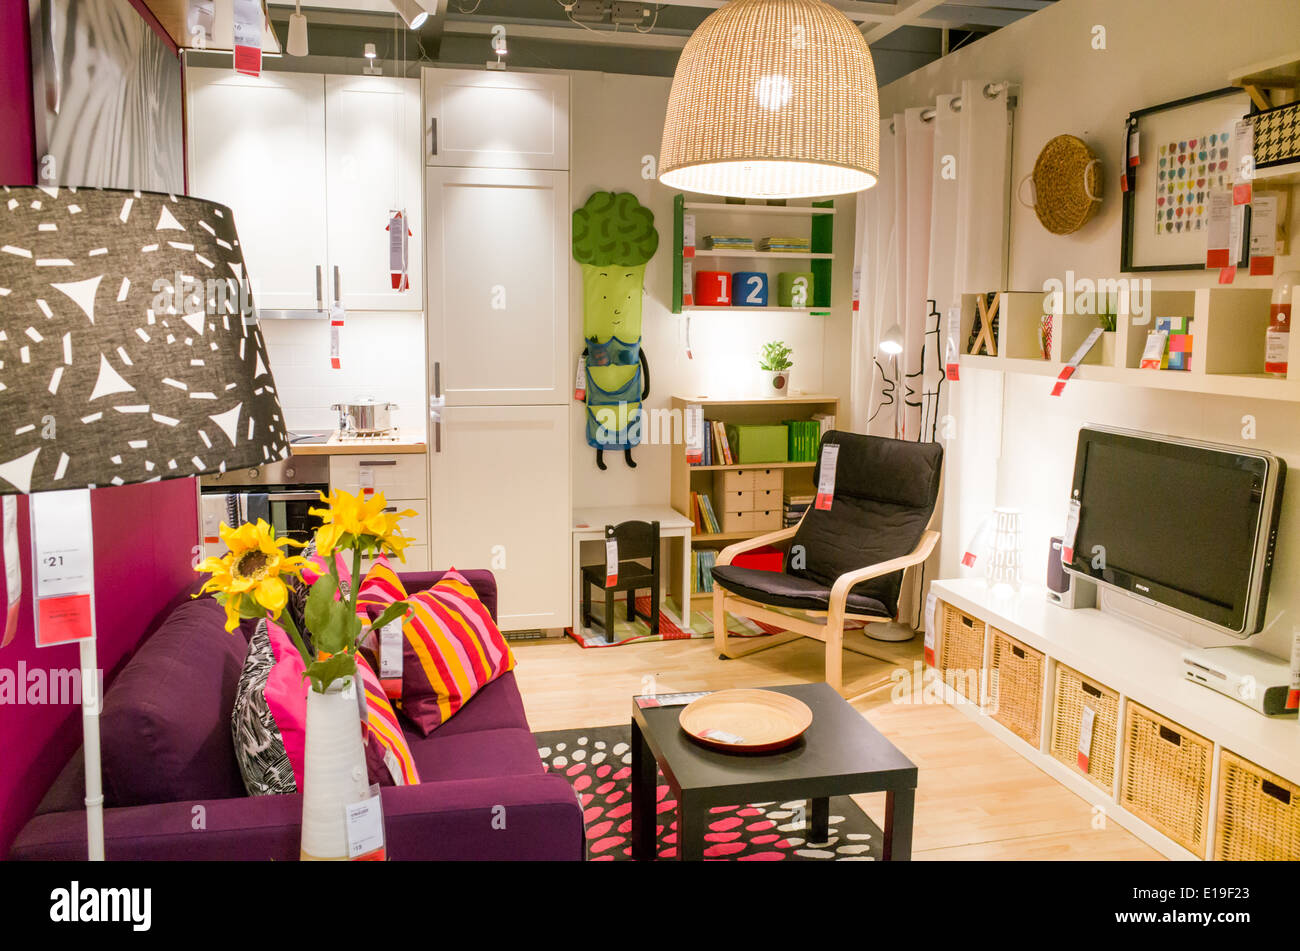 A Show Bedroom At Ikea Furniture Store, England, UK   Stock Image